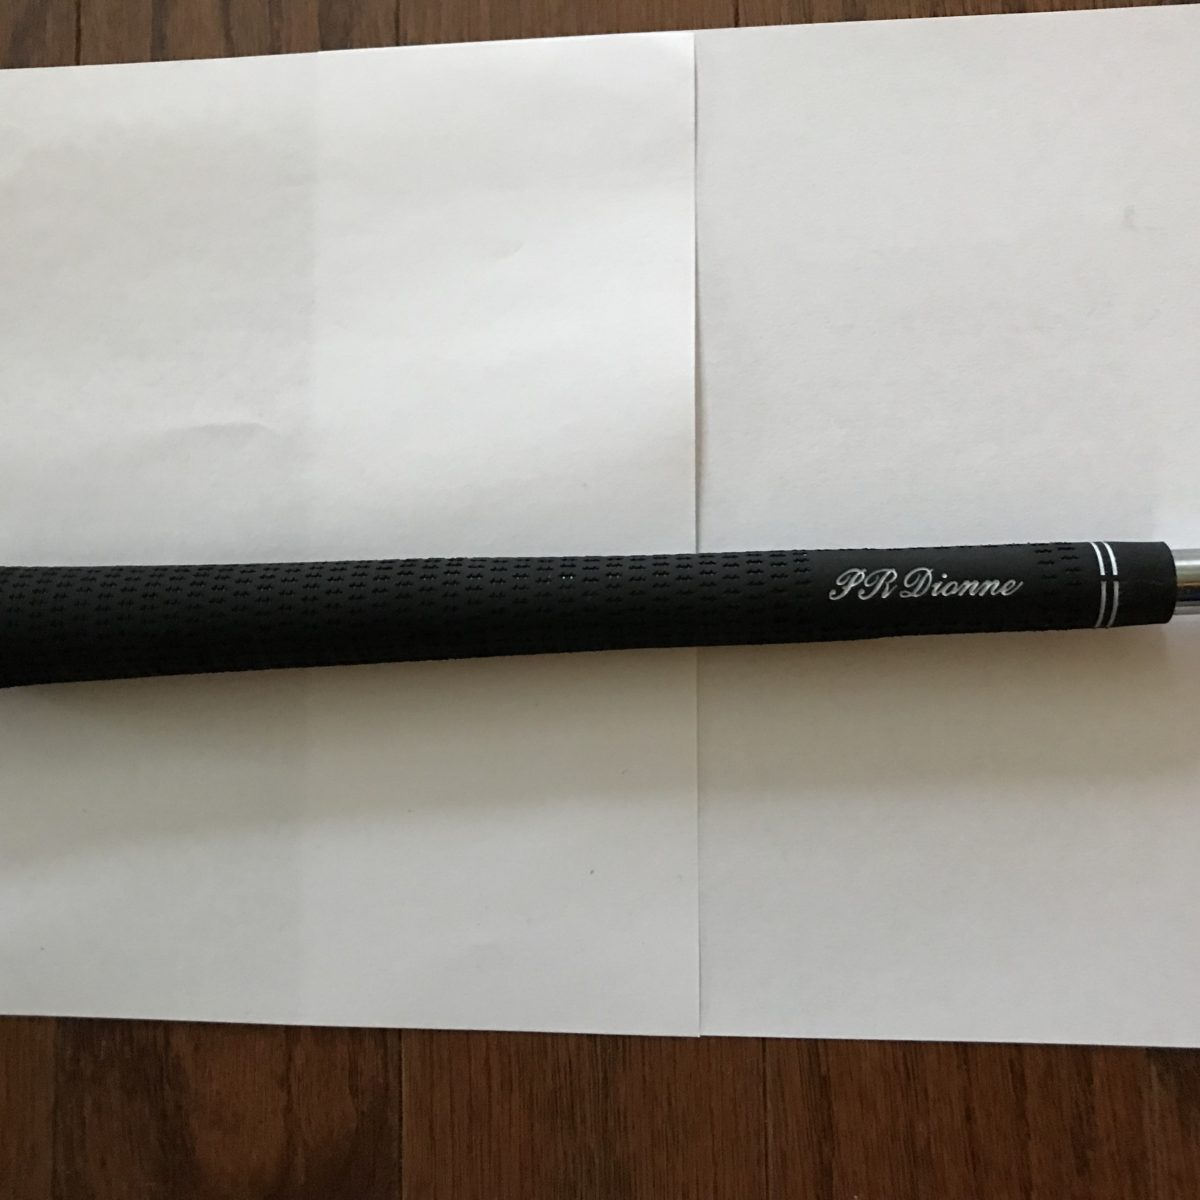 PR Dionne Golf Club Grip